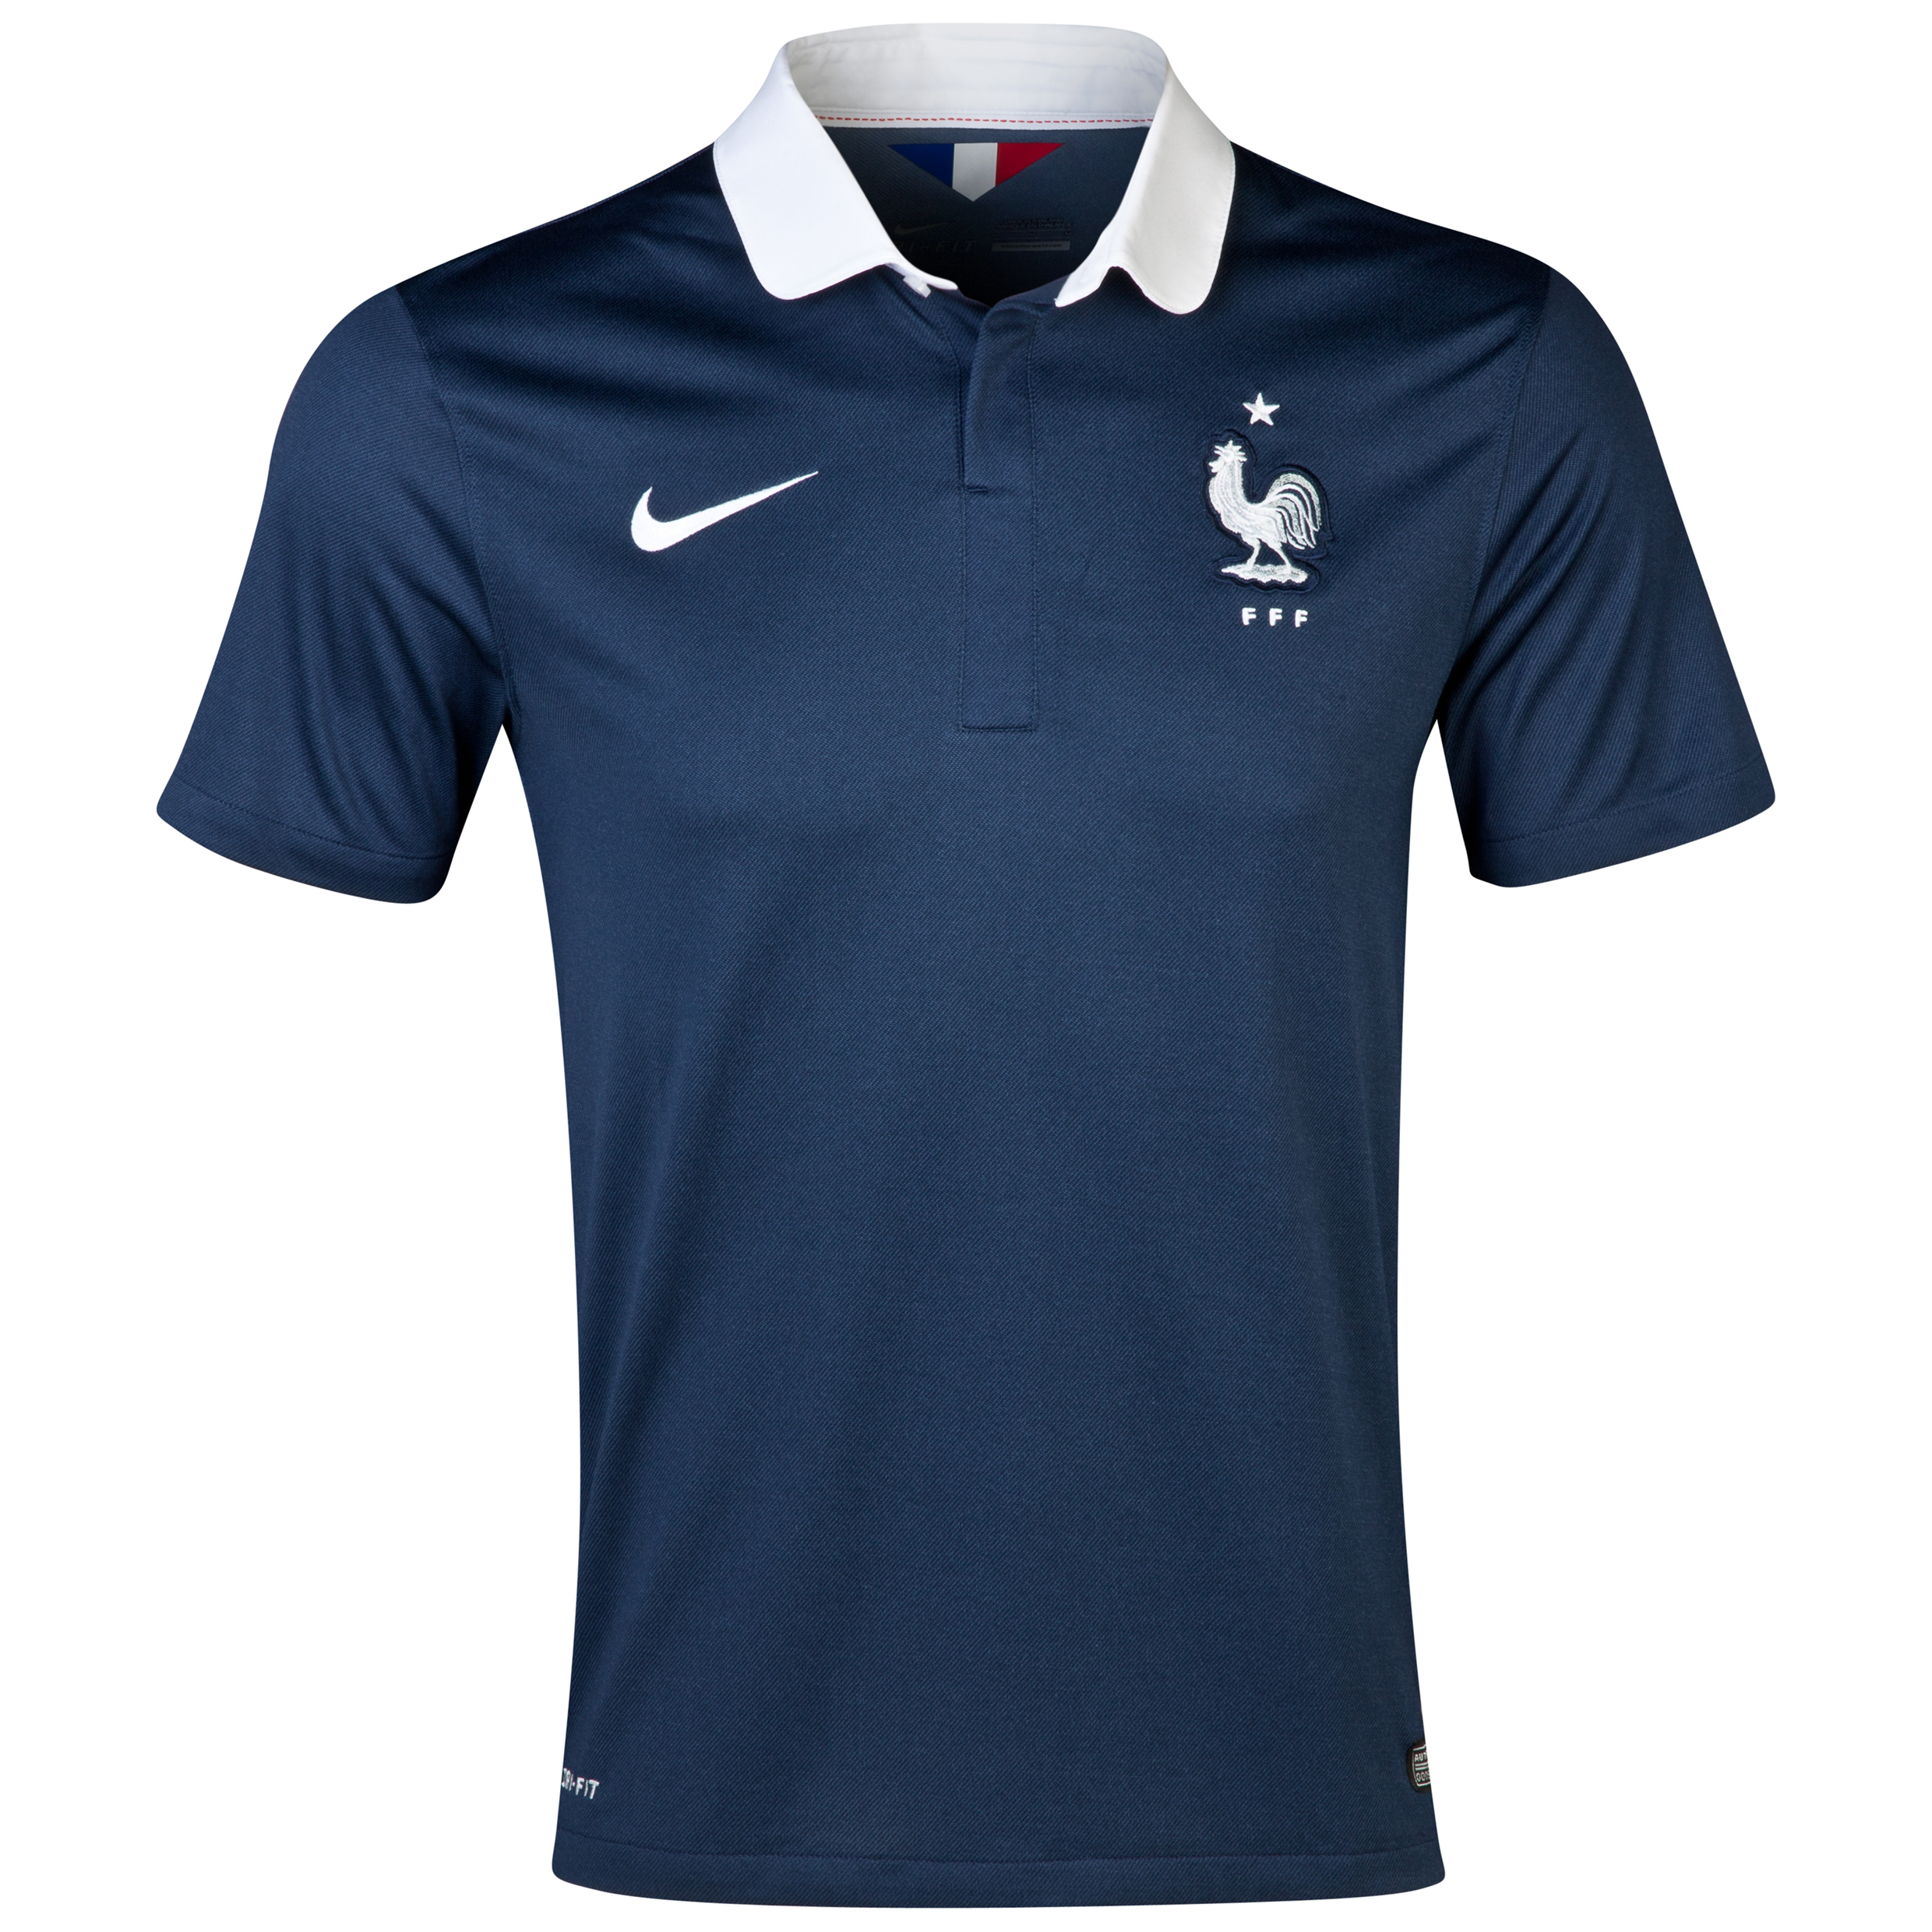 France Home Shirt 2014/15 - Kids Navy